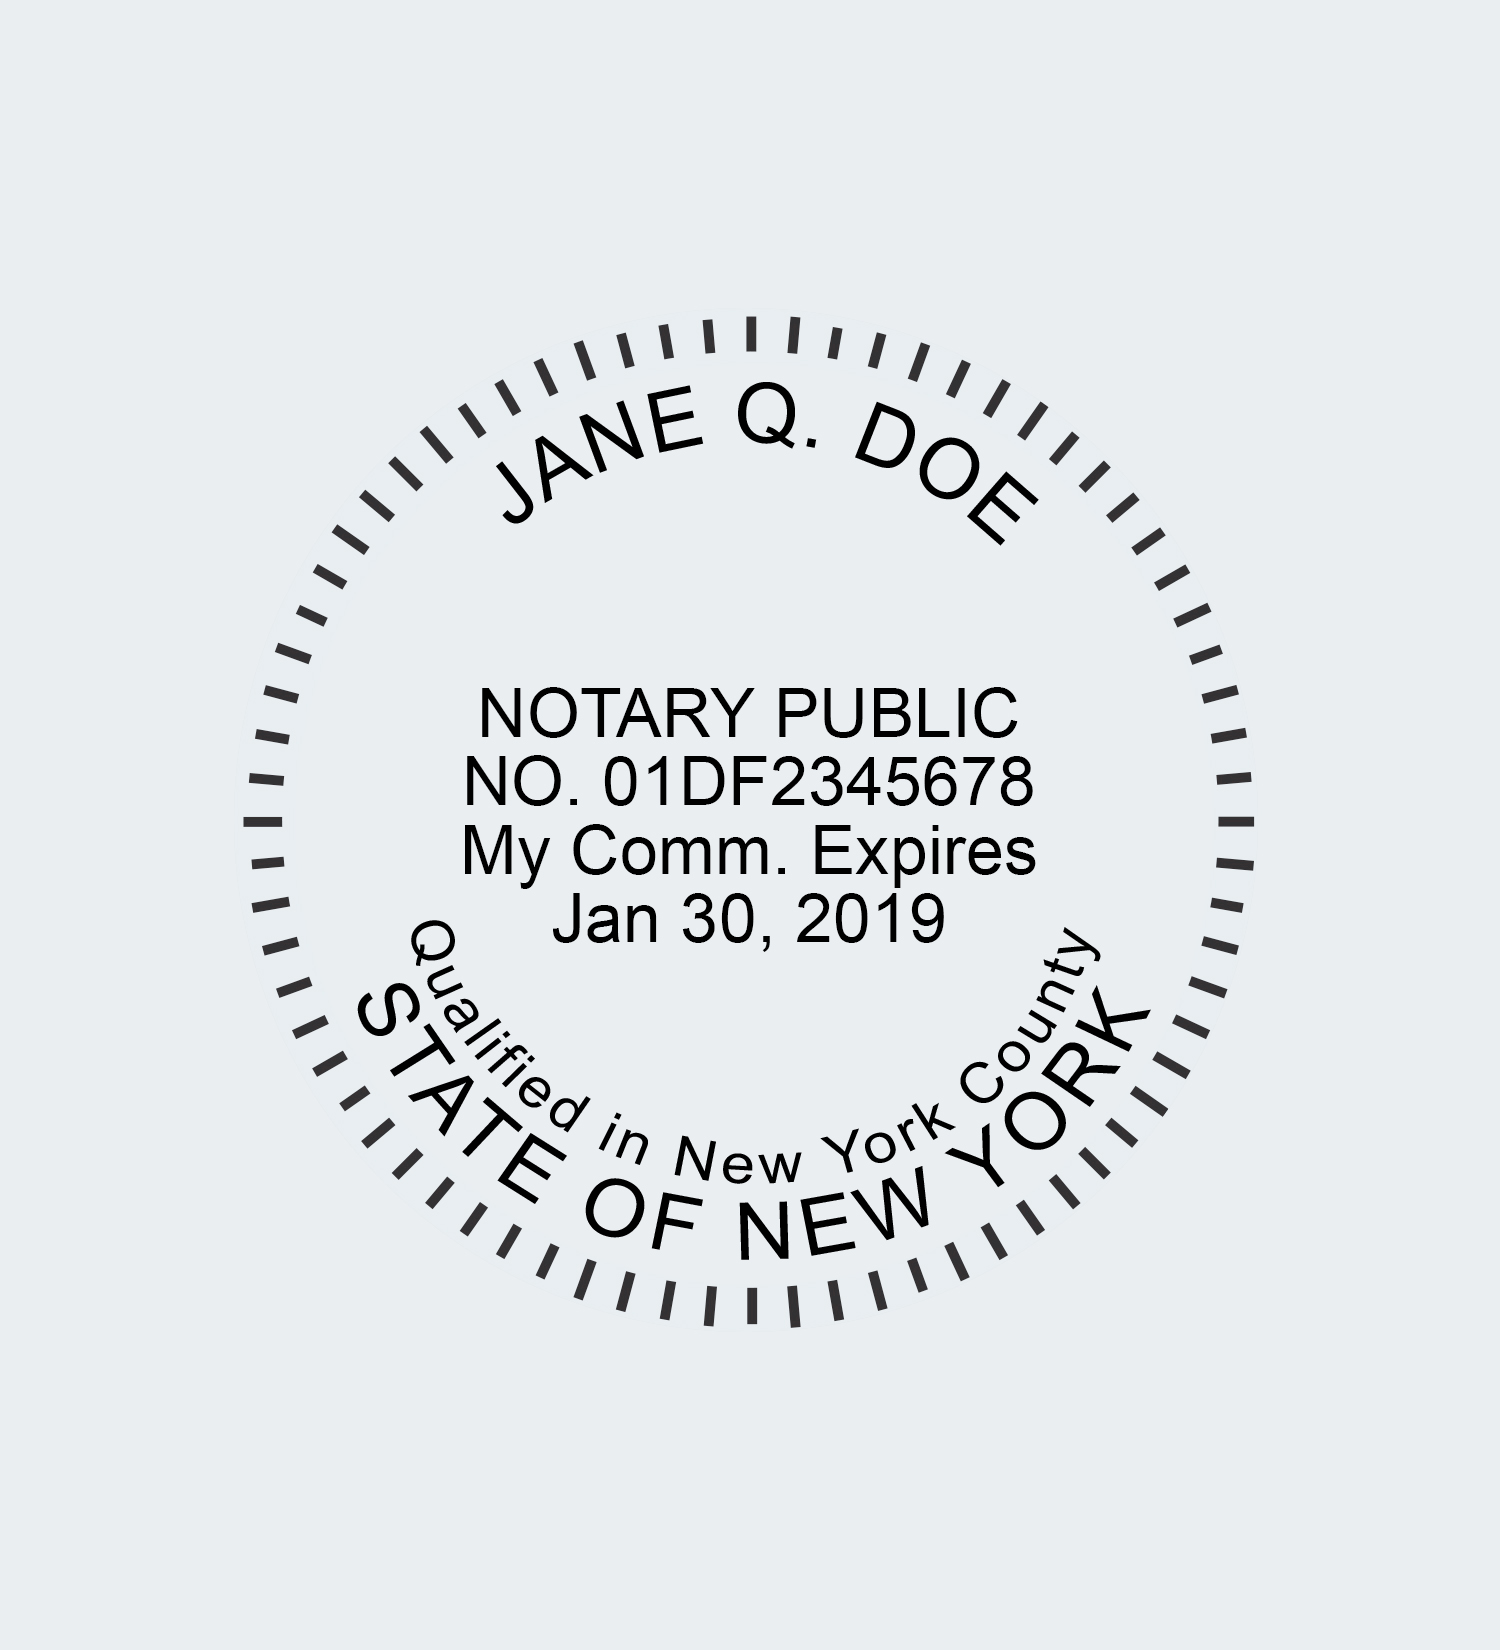 Prepare to be a Notary in One Day at C-GCC